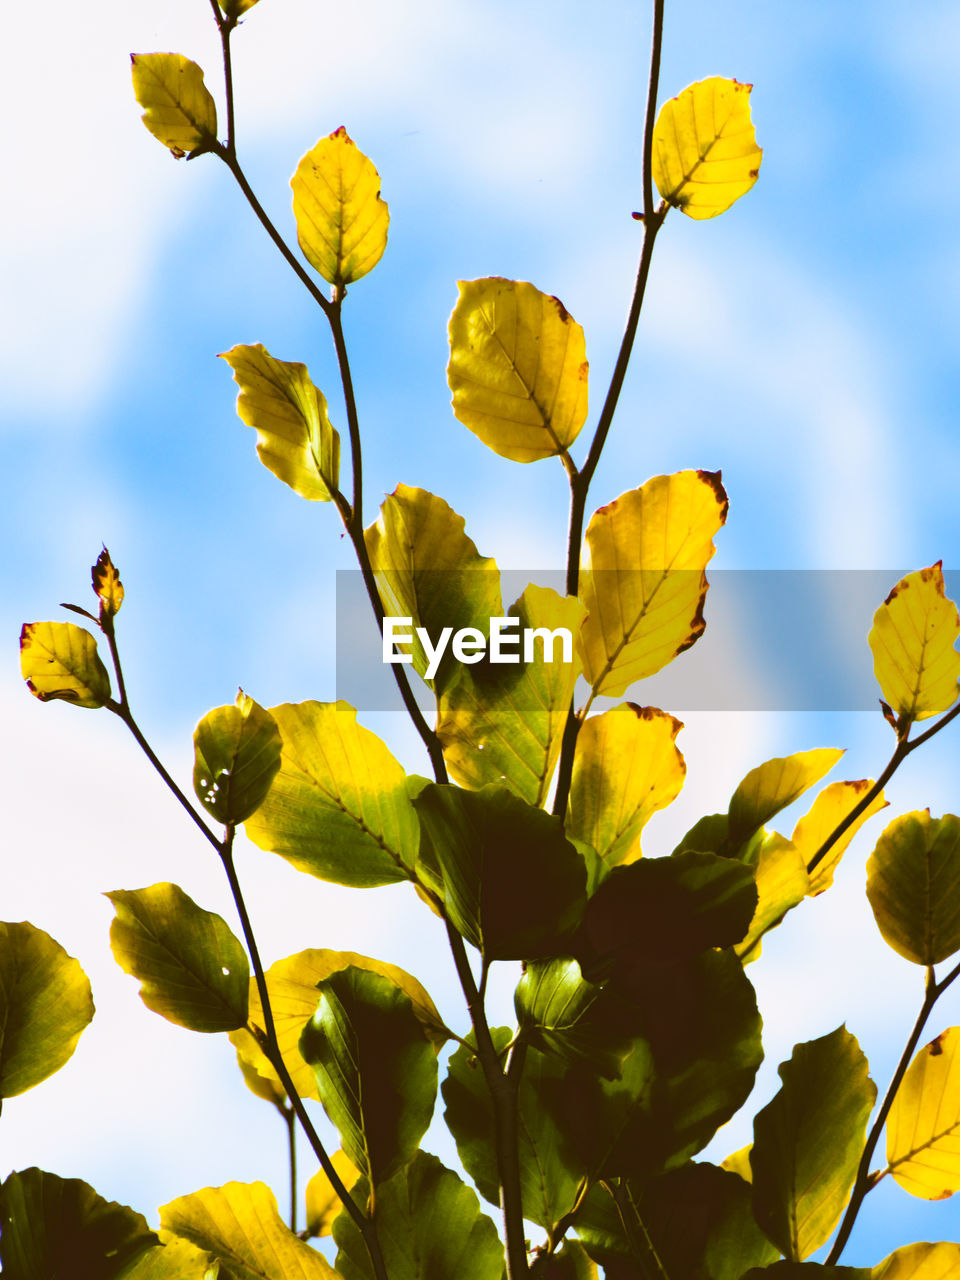 growth, plant, yellow, beauty in nature, low angle view, leaf, plant part, no people, sky, nature, close-up, flower, day, flowering plant, outdoors, freshness, fragility, vulnerability, tree, branch